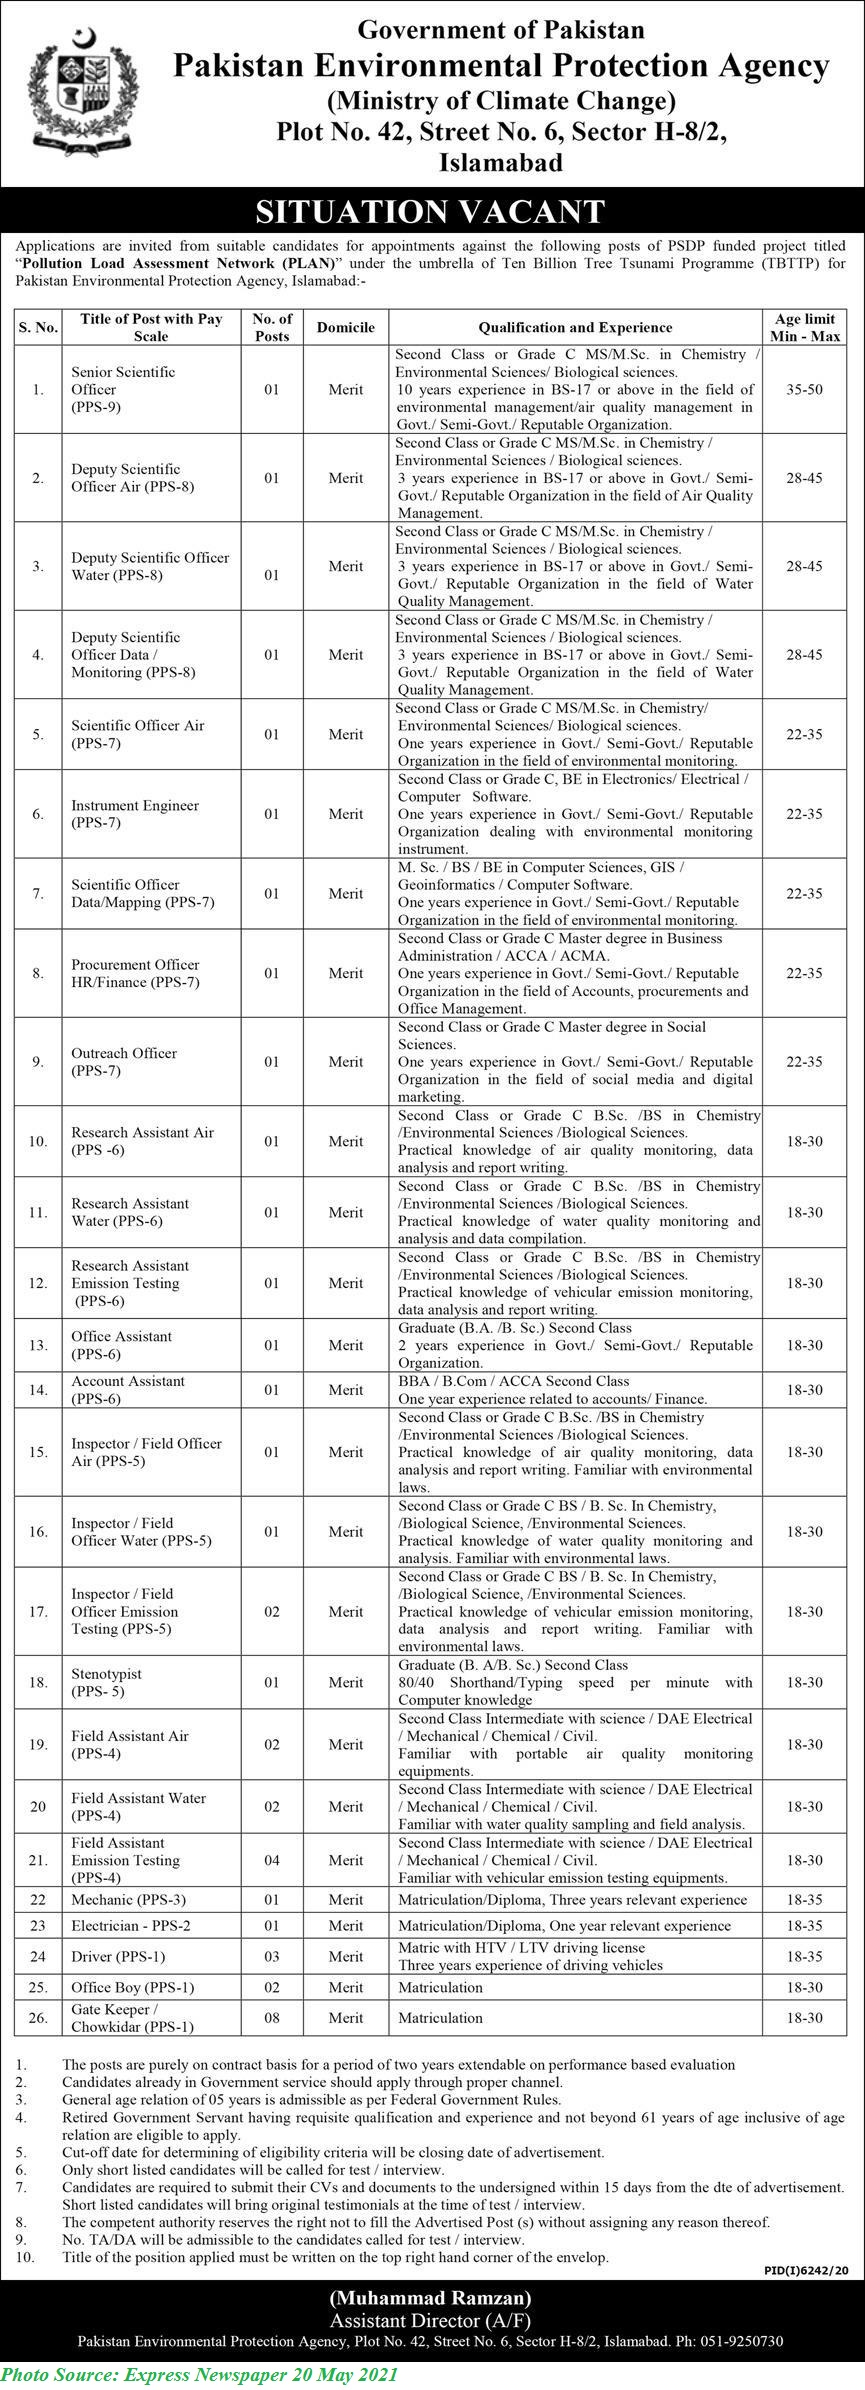 MOCC Jobs 2021 - Ministyry of Climate Change Pakistan Environment Protection Agency Jobs 2021 Latest